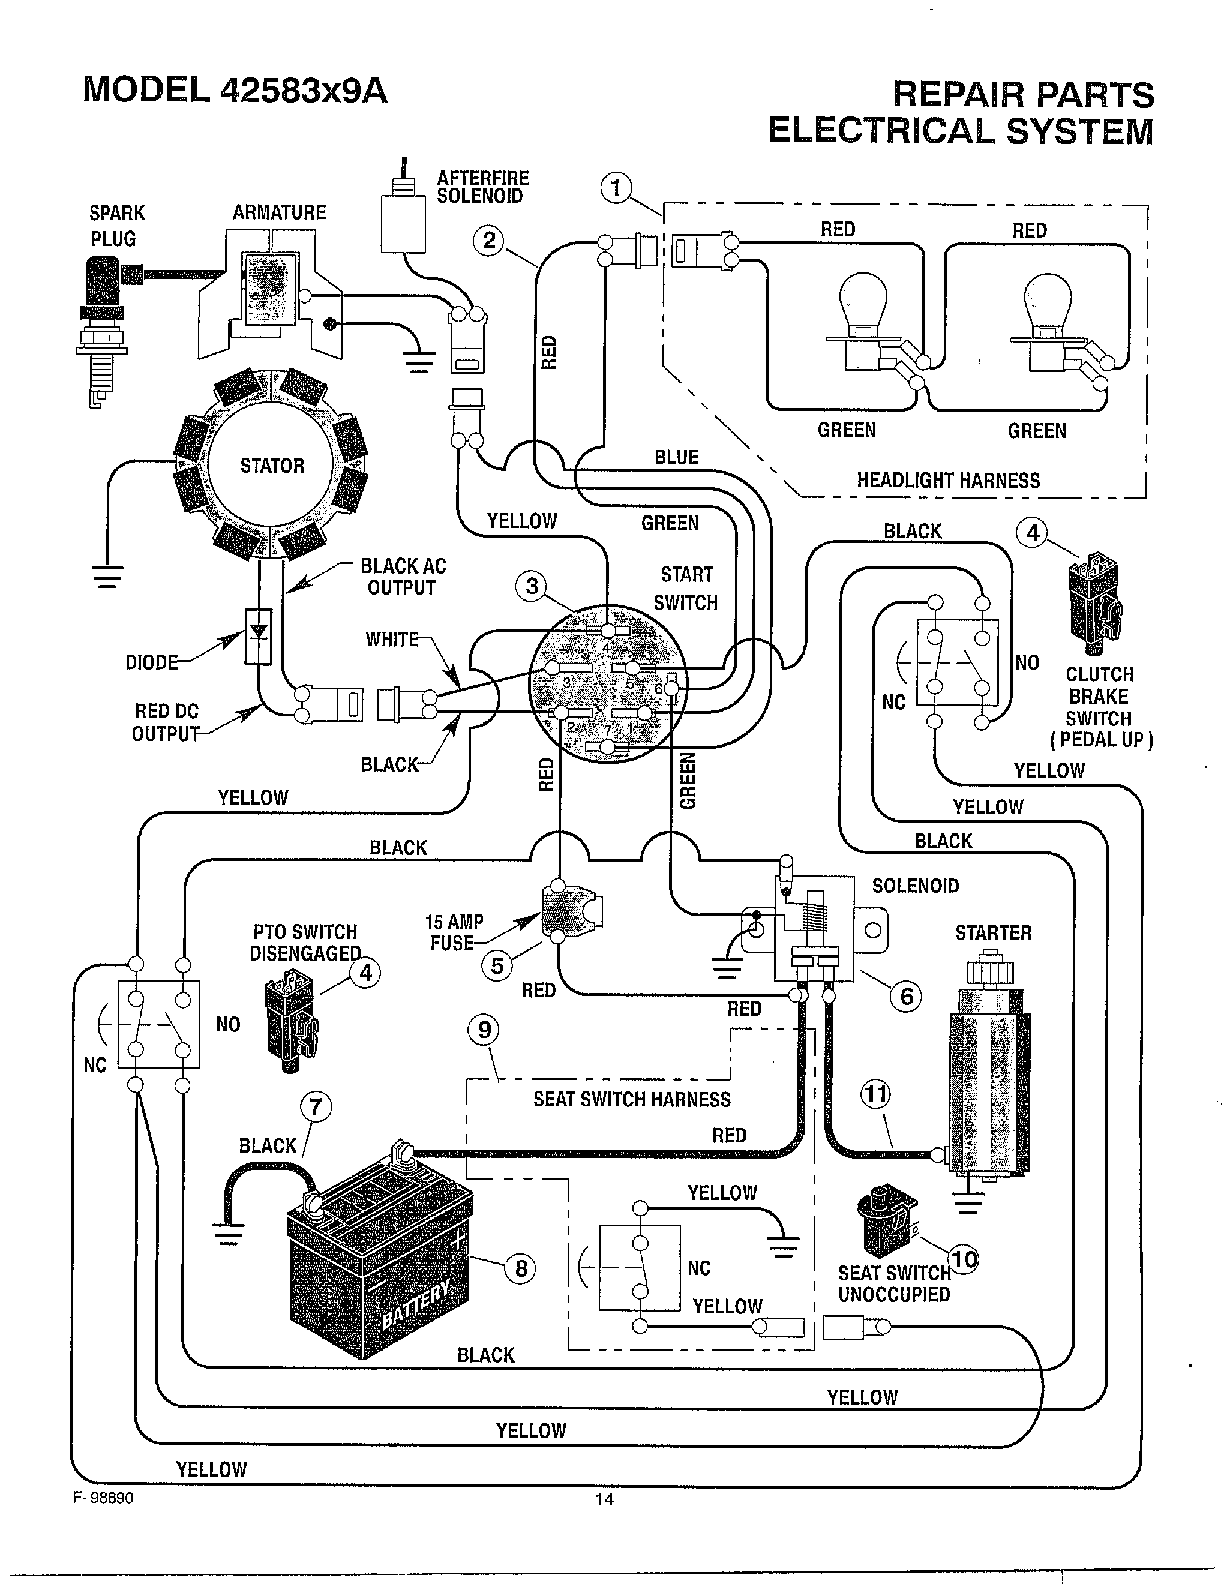 Conversion in progress RI wiring diagram please